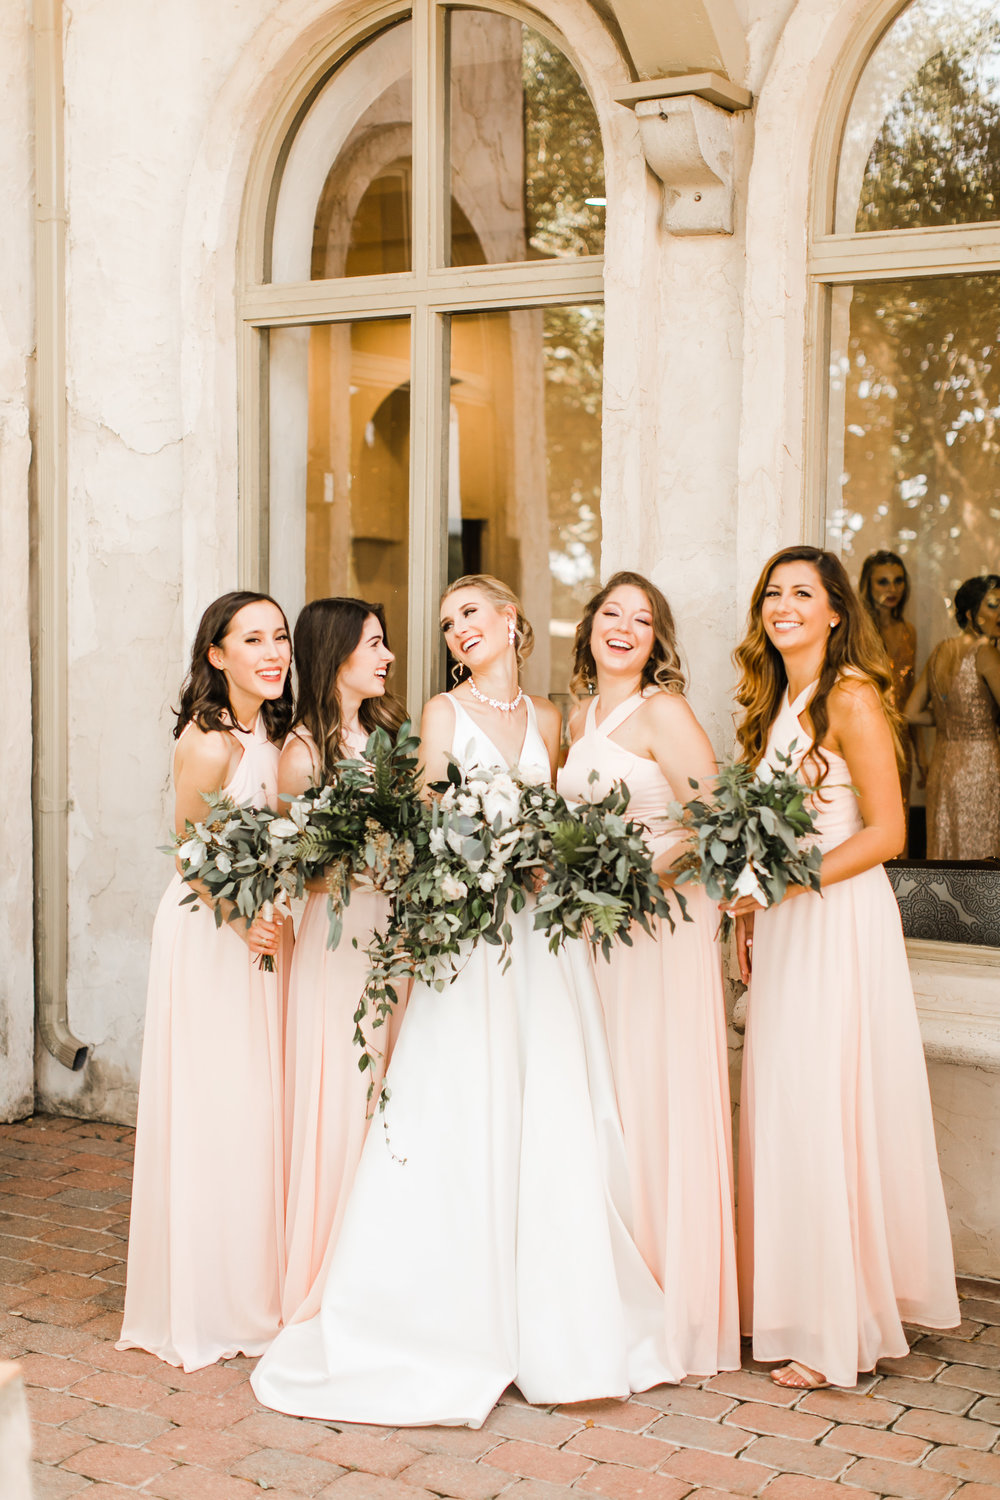 Reilee+SarahWeddingParty-83.jpg